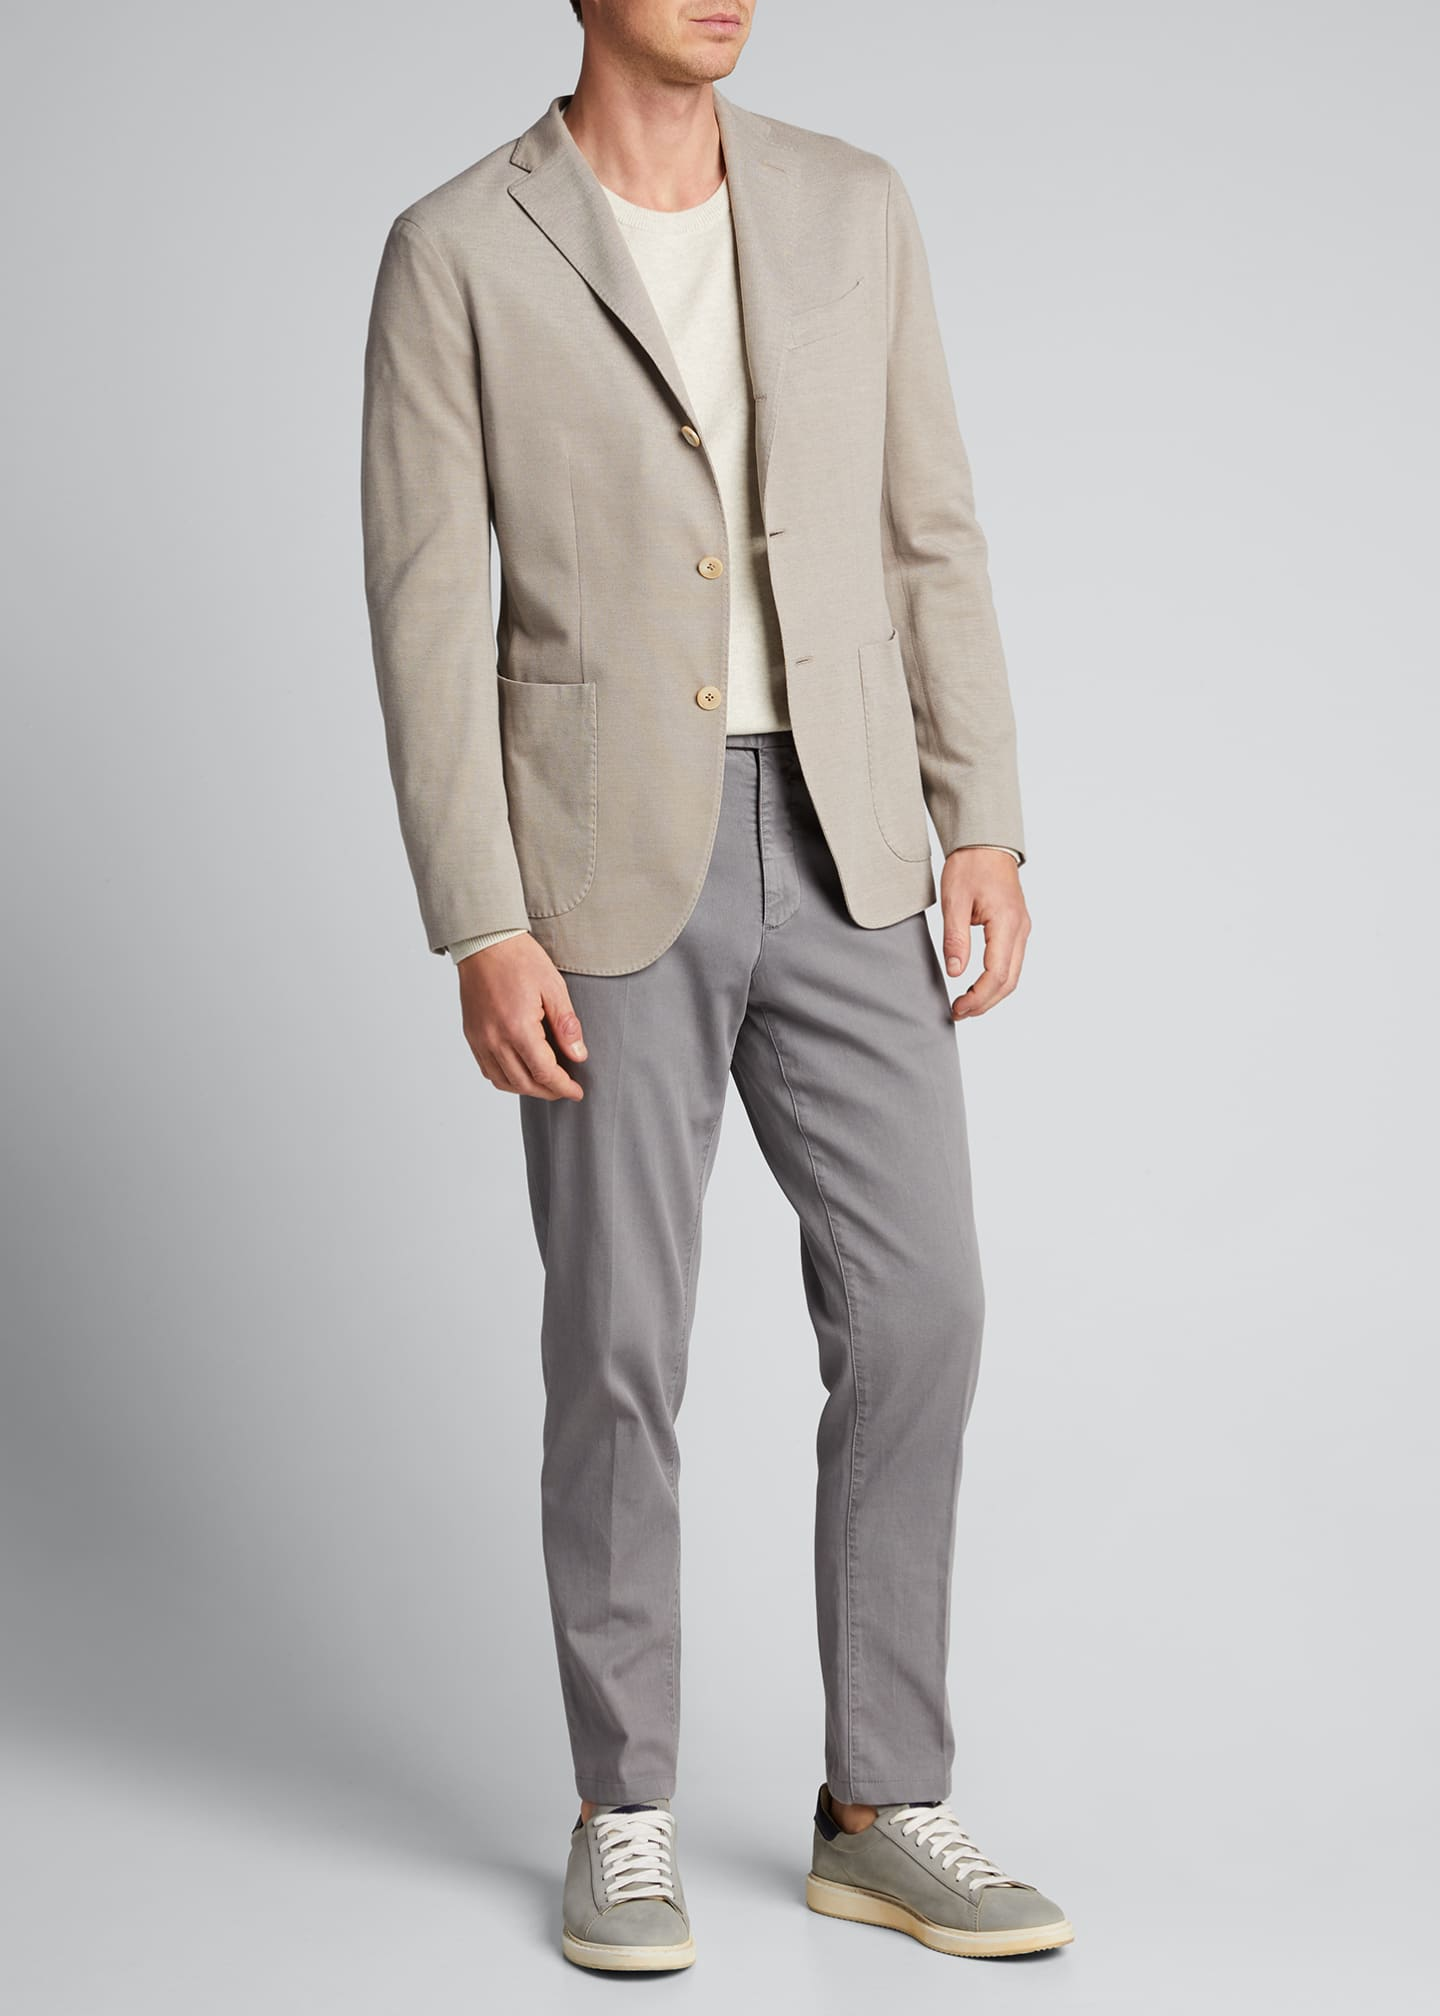 Image 1 of 5: Men's Solid Pique Knit Blazer